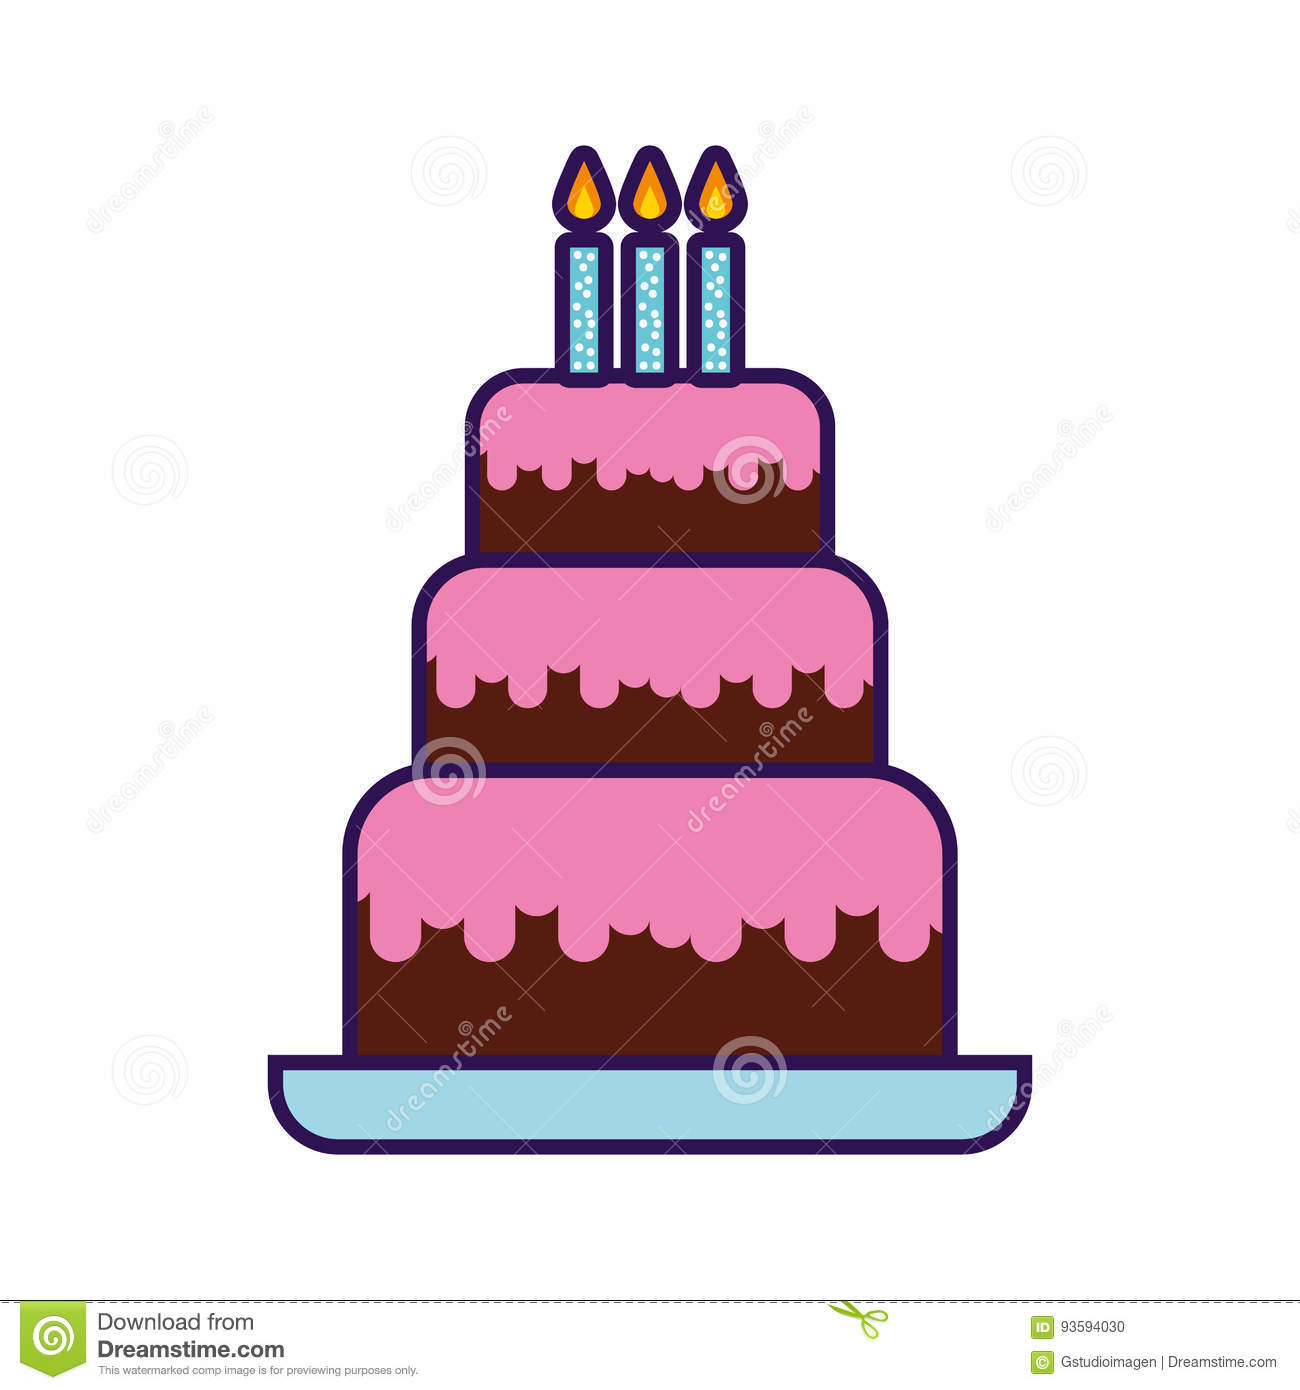 Cute Birthday Cake Cartoon Vector Graphic Design